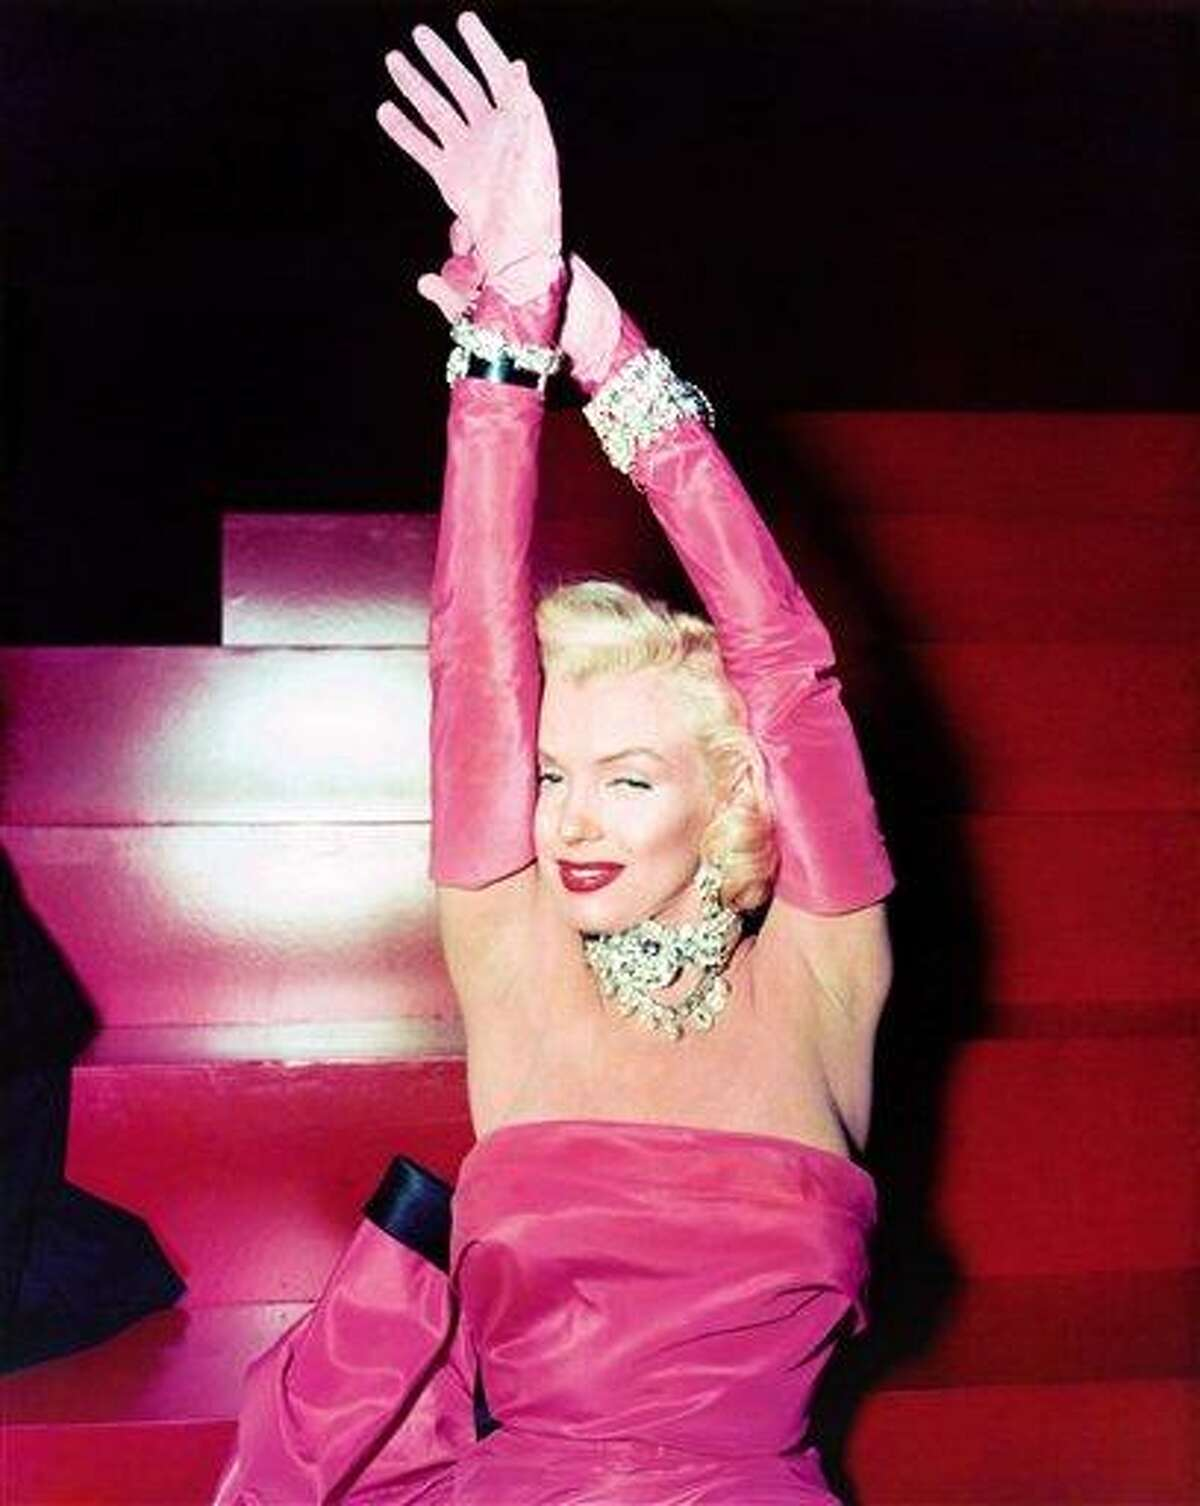 """In this 1953 publicity file photo provided by Running Press, Marilyn Monroe is shown on set of the film, """"Gentlemen Prefer Blondes."""" Monroe is probably best remembered for her comic turns in this film. The picture is included in a new 2012 book, """"Marilyn in Fashion,"""" published by Running Press. (AP Photo/Courtesy Running Press)"""